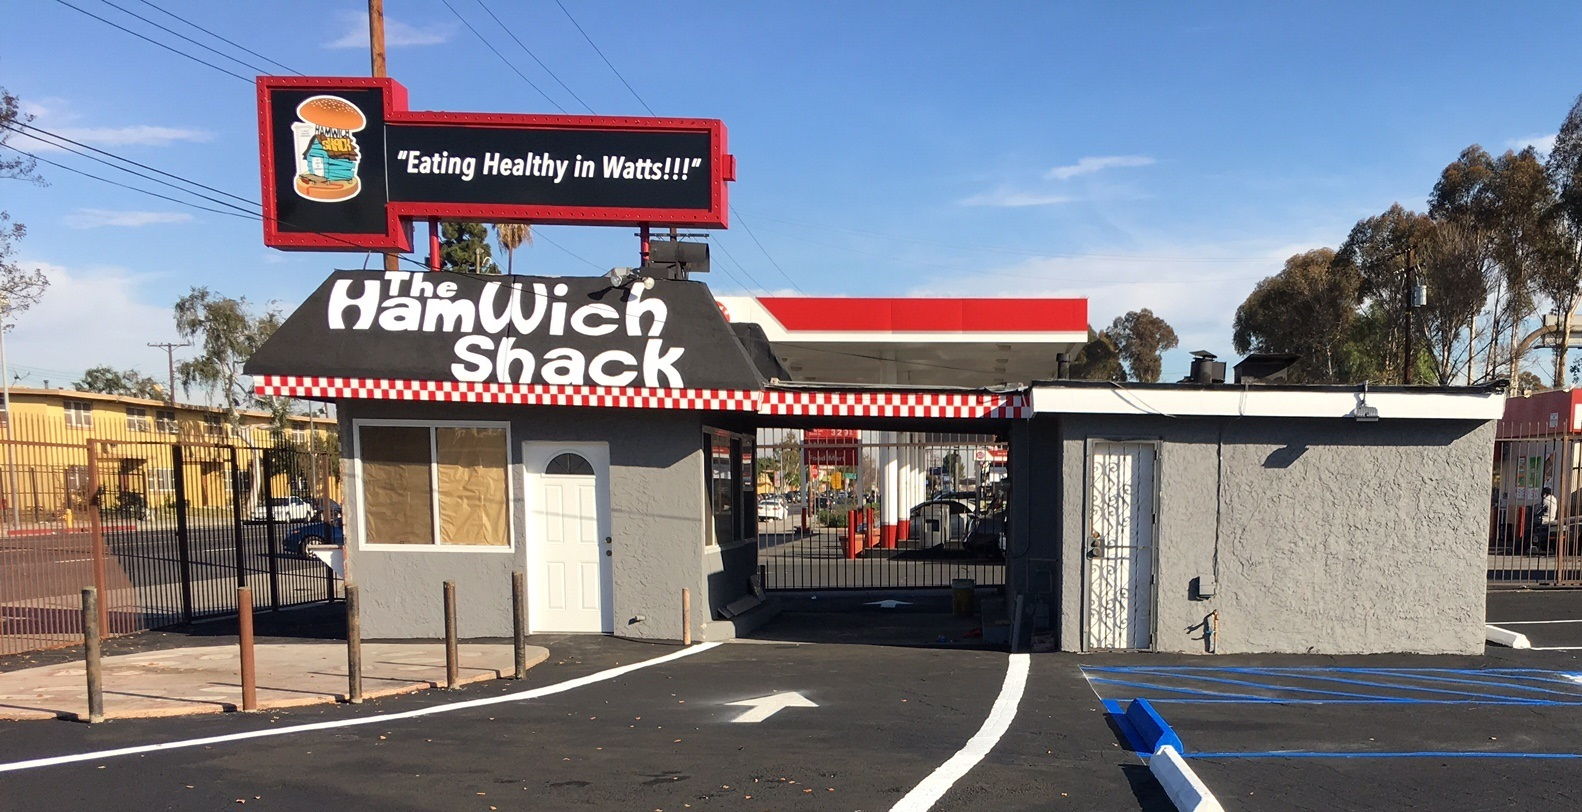 The Hamwich Shack in Watts, CA